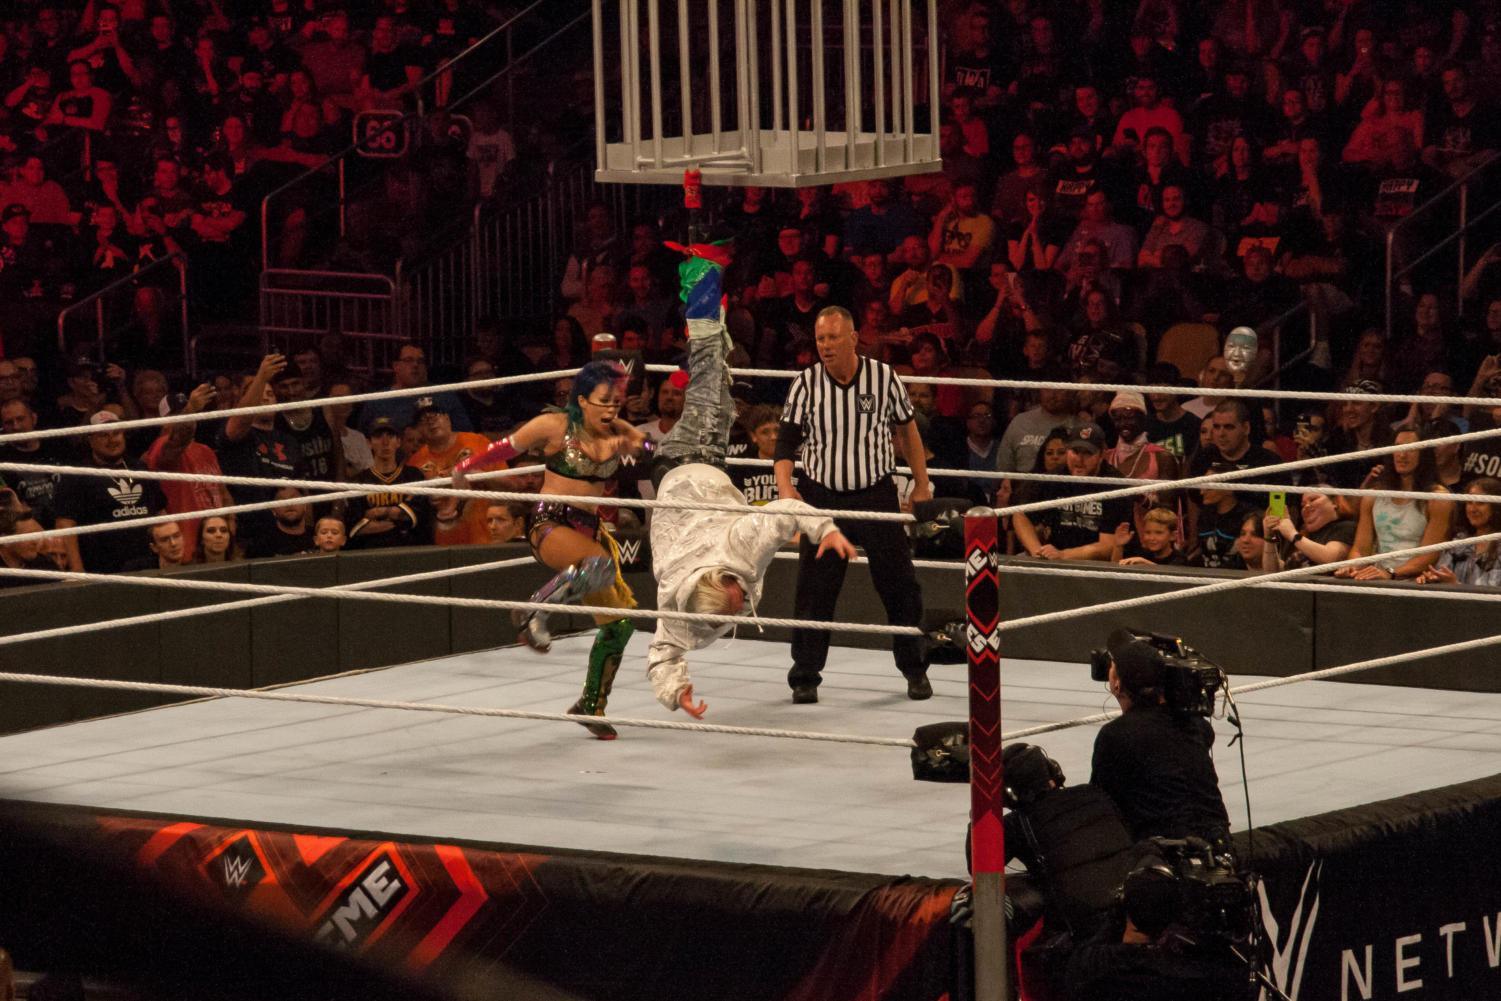 Asuka (left) takes the opportunity for revenge on James Ellsworth after his interference in a previous match.